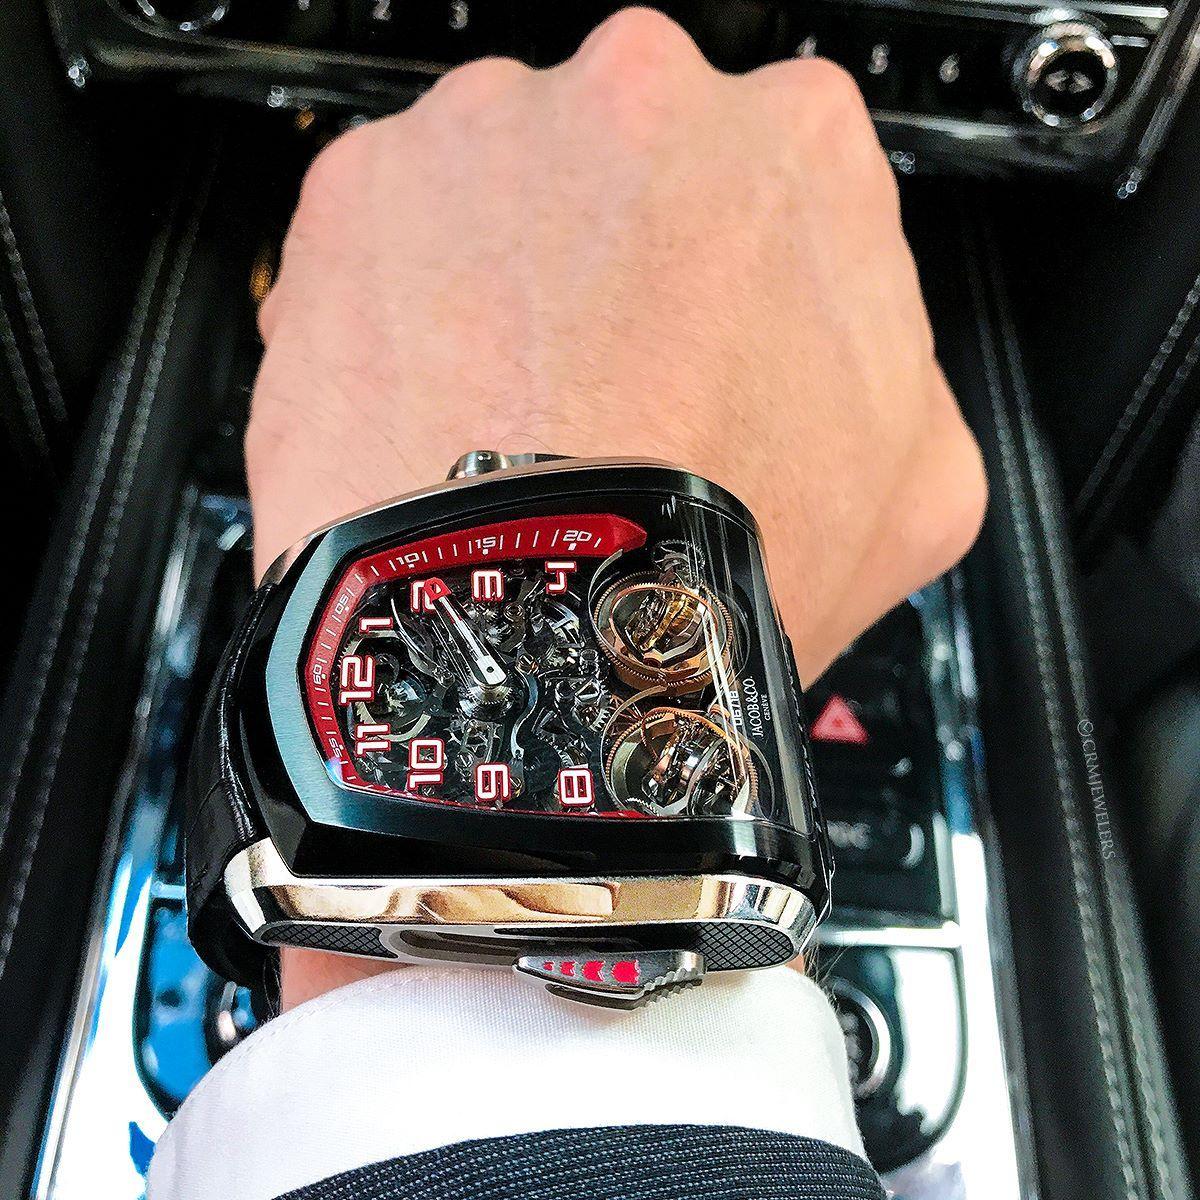 THe neq hublit twinn turbo on thi shhfeter if i nededs tome time] aboout it! Ley me know!           is part of Womens watches luxury -